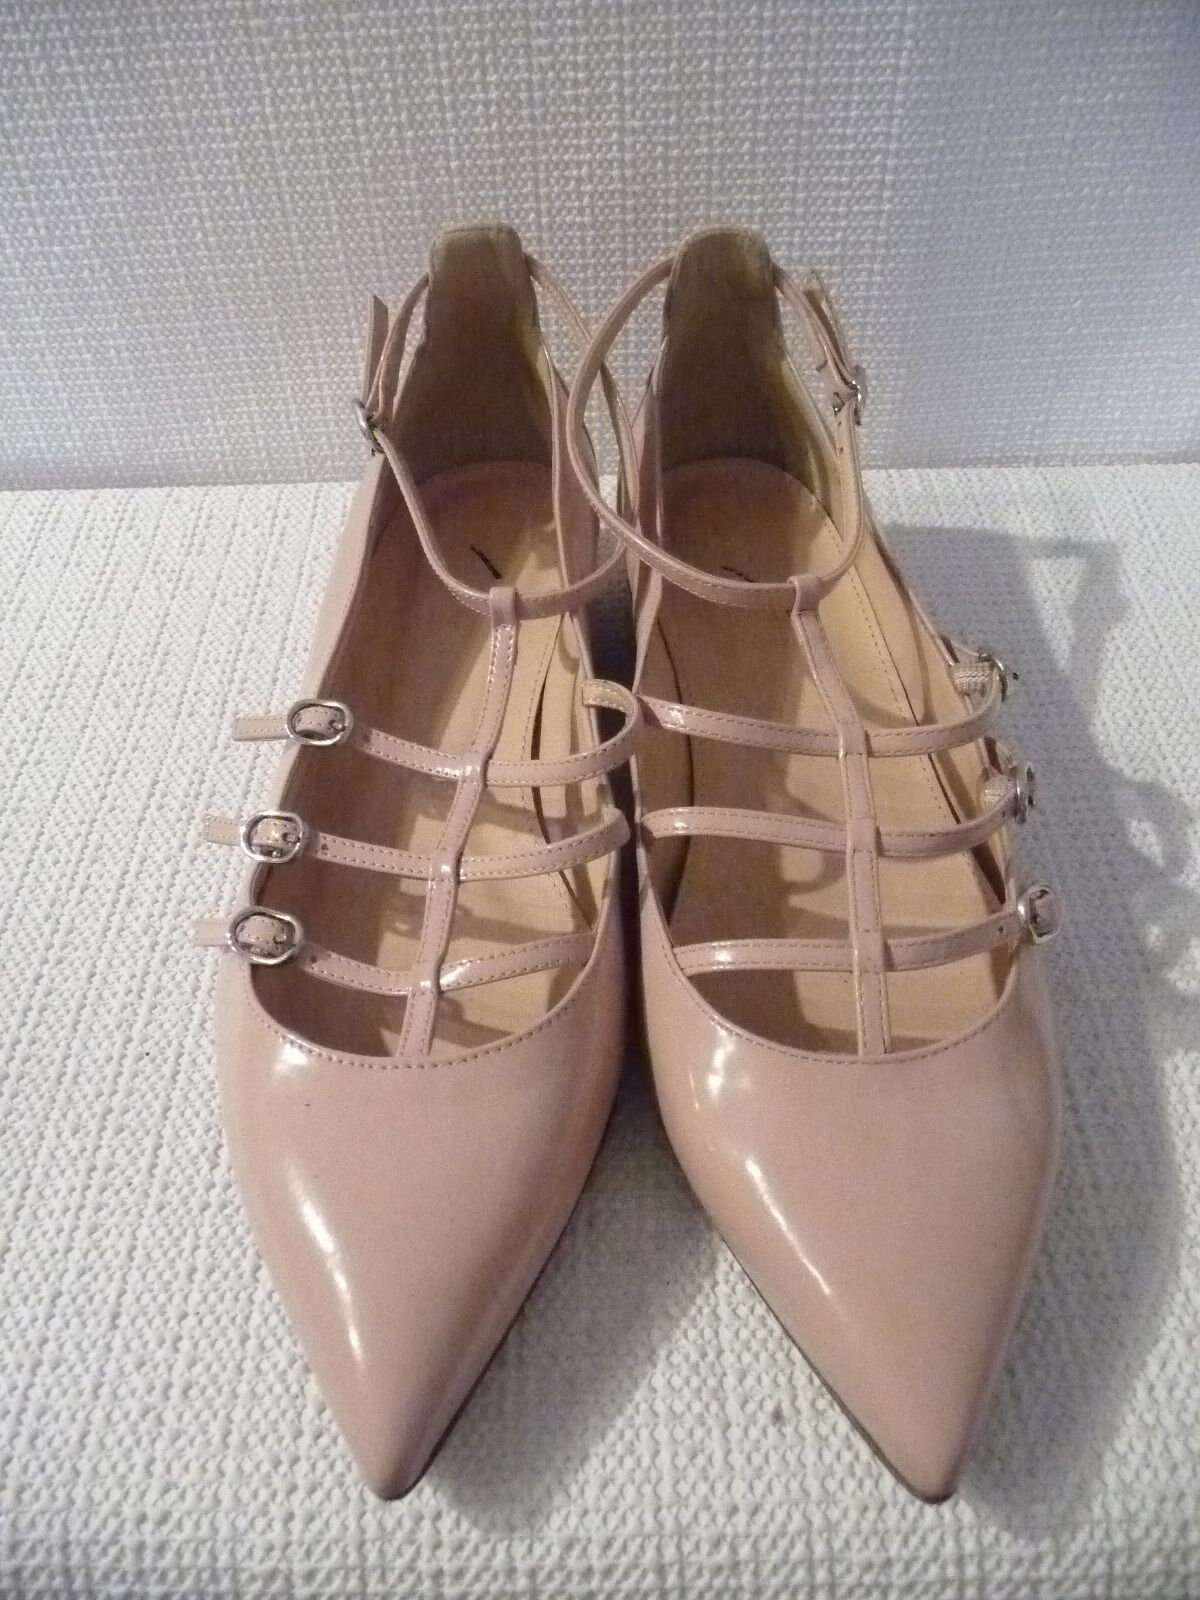 NEW J.CREW CAGED FLATS IN GLOSSY LEATHER, F5530, SIZE 7, PALE BLOOM,  168